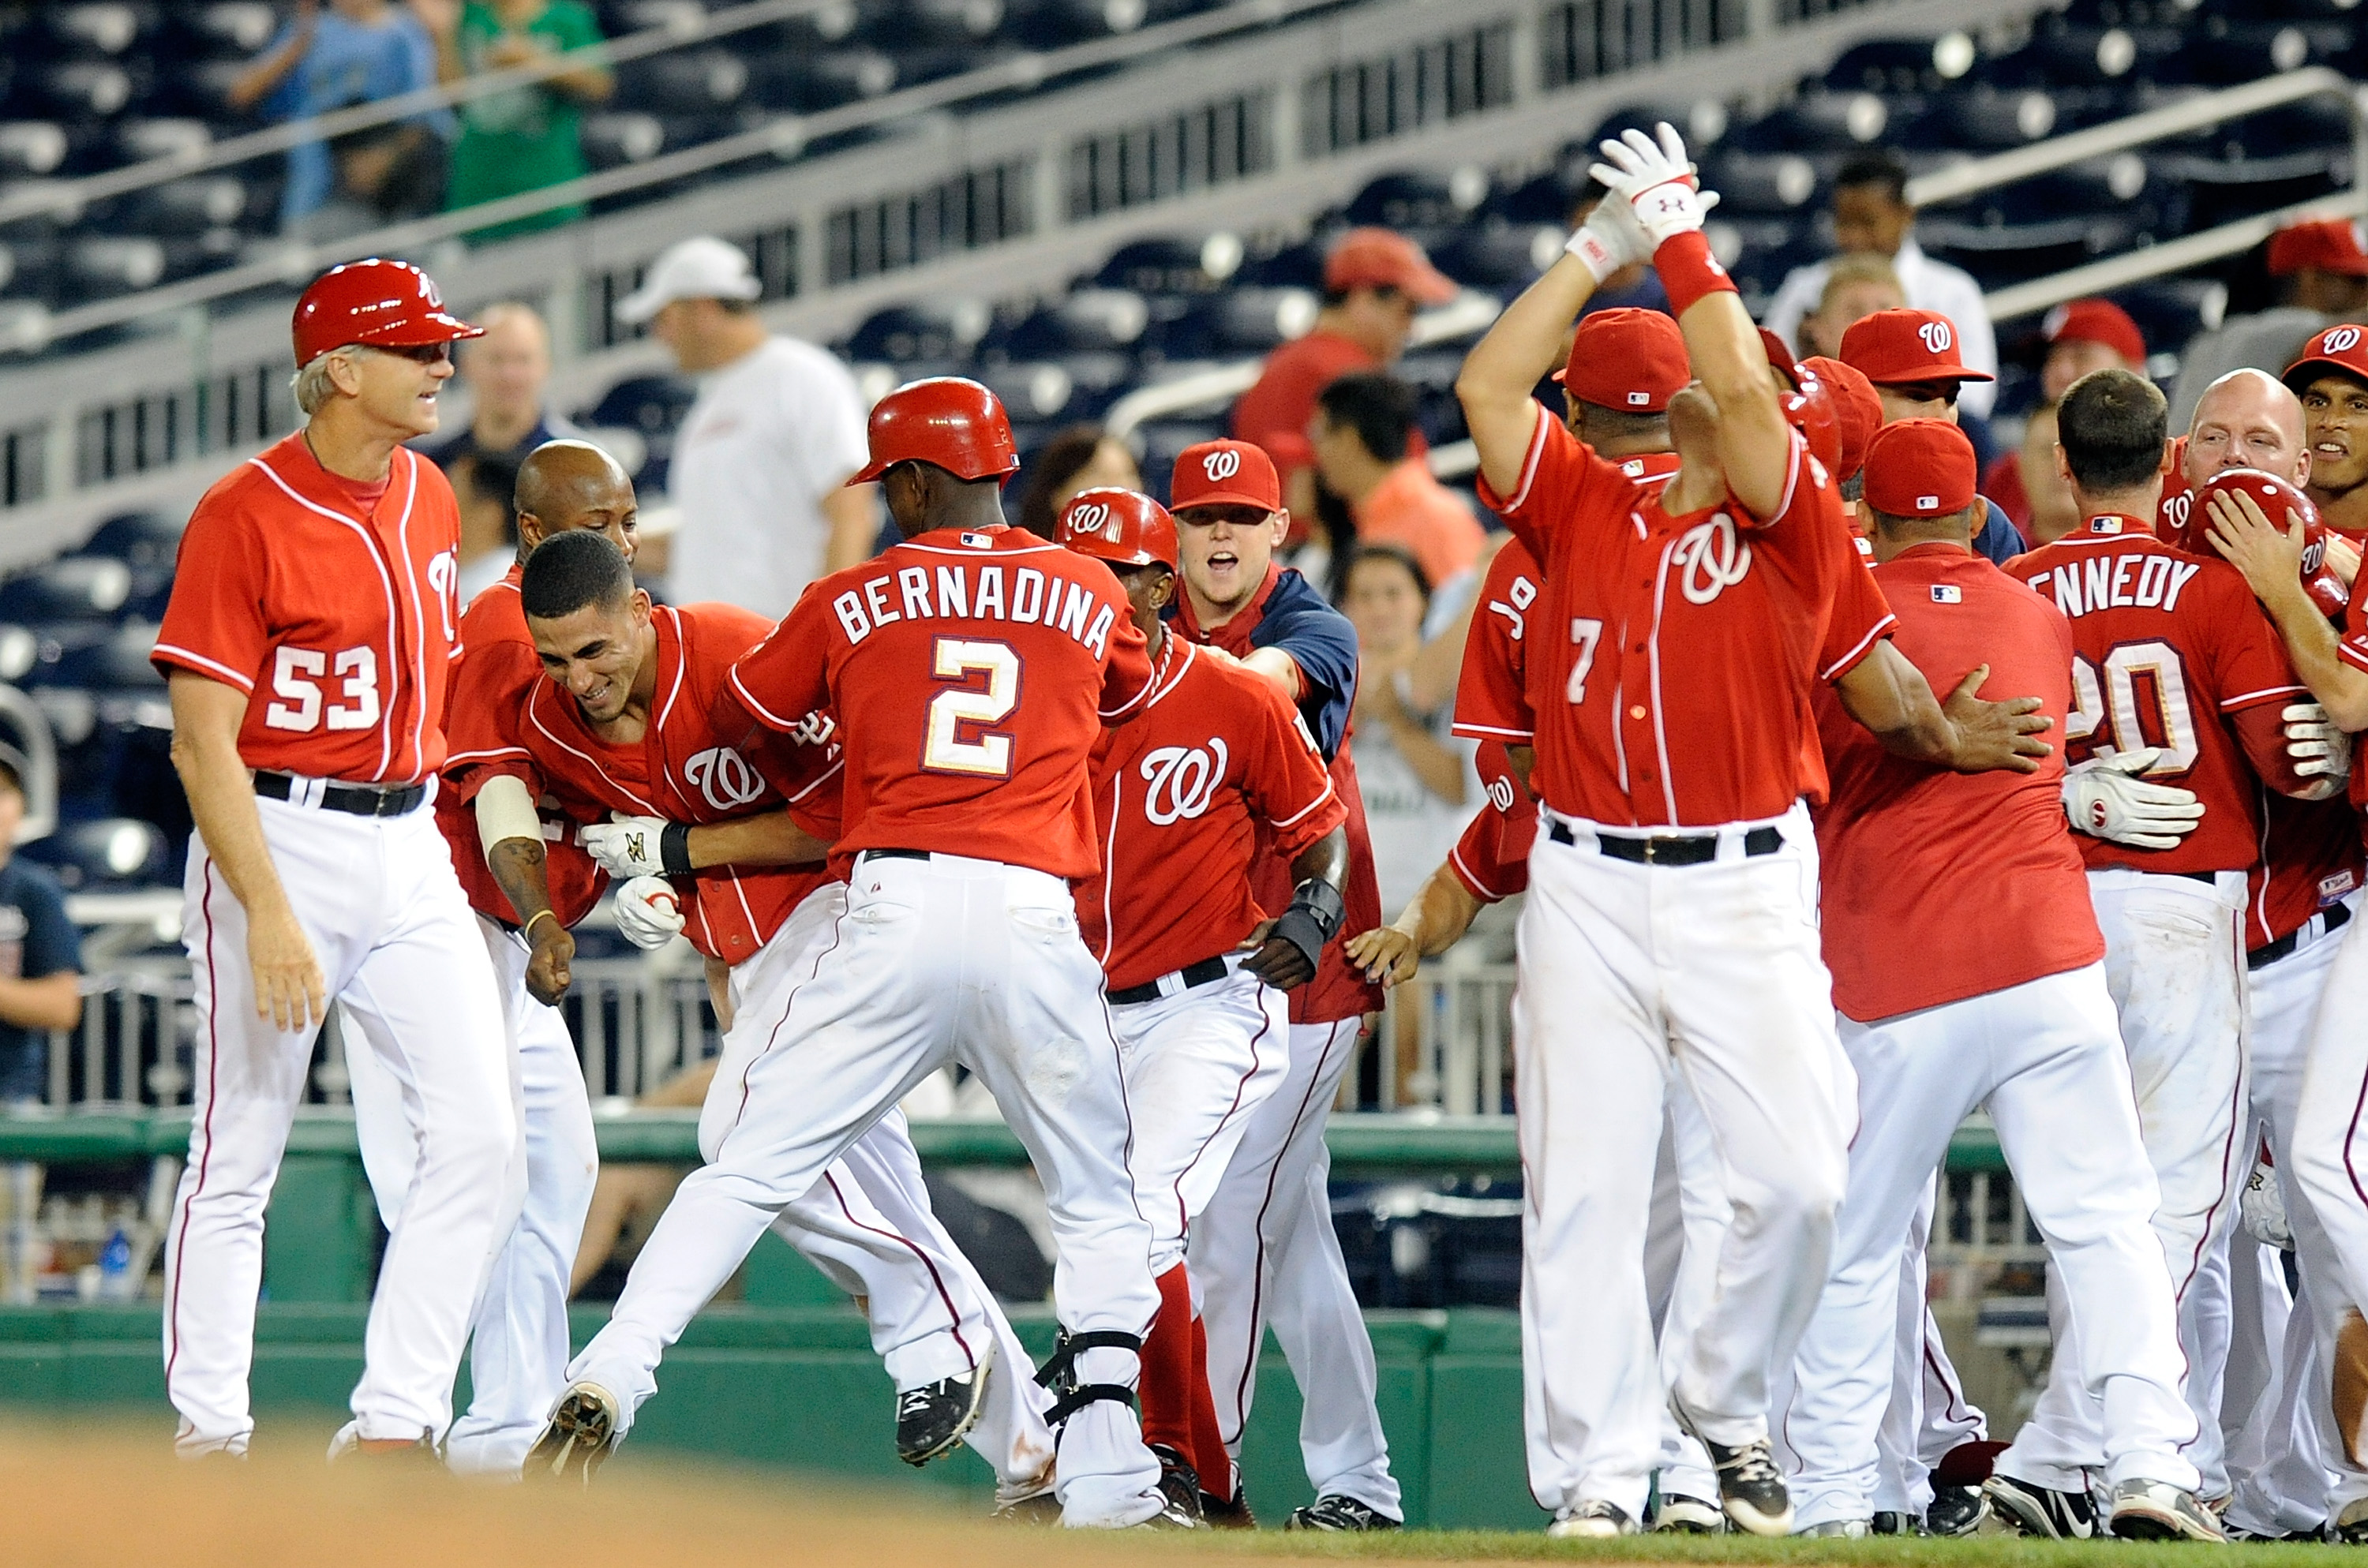 An improved Washington Nationals team should make the NL East a very competitive division in 2011.